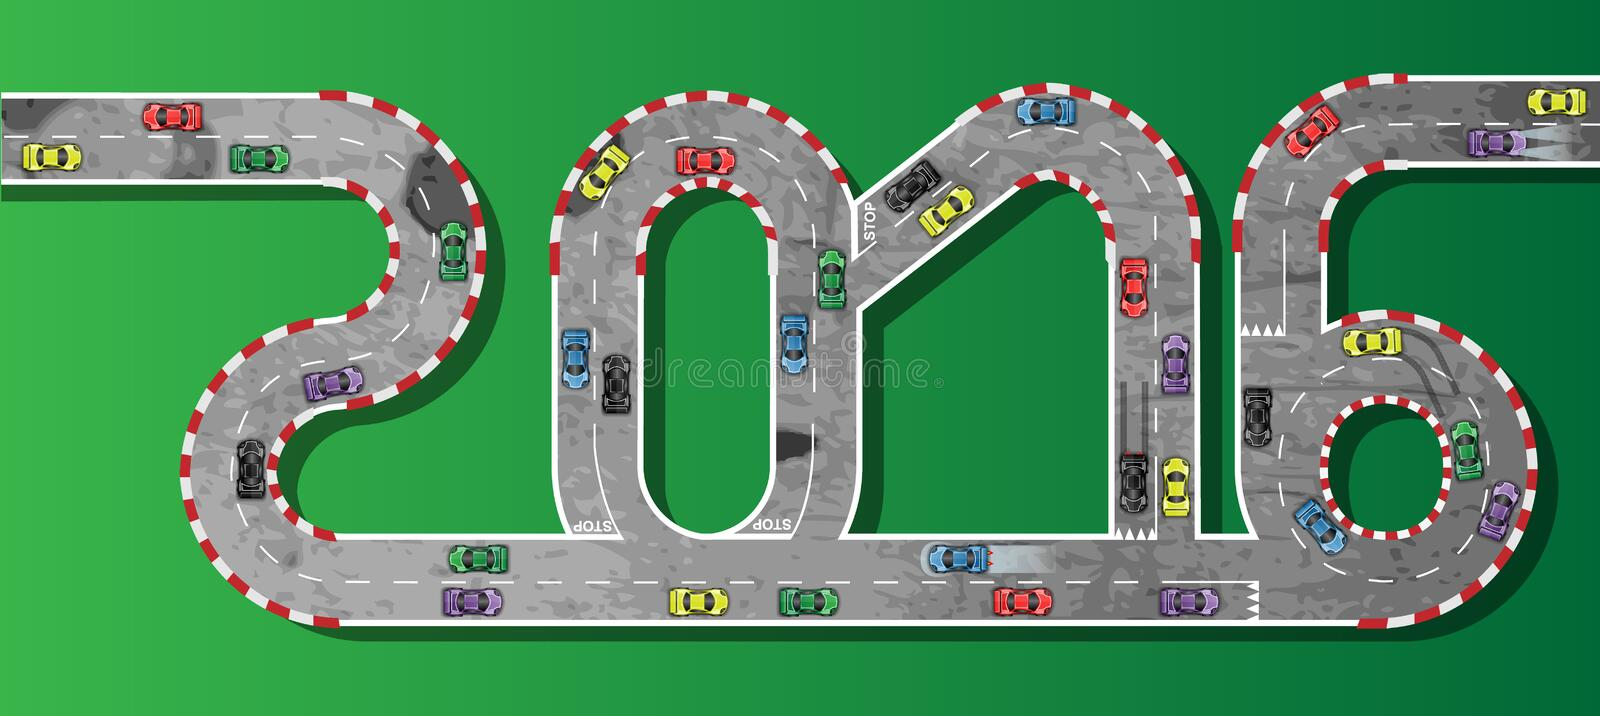 2016 race car happy new year. And merry christmas vector illustration